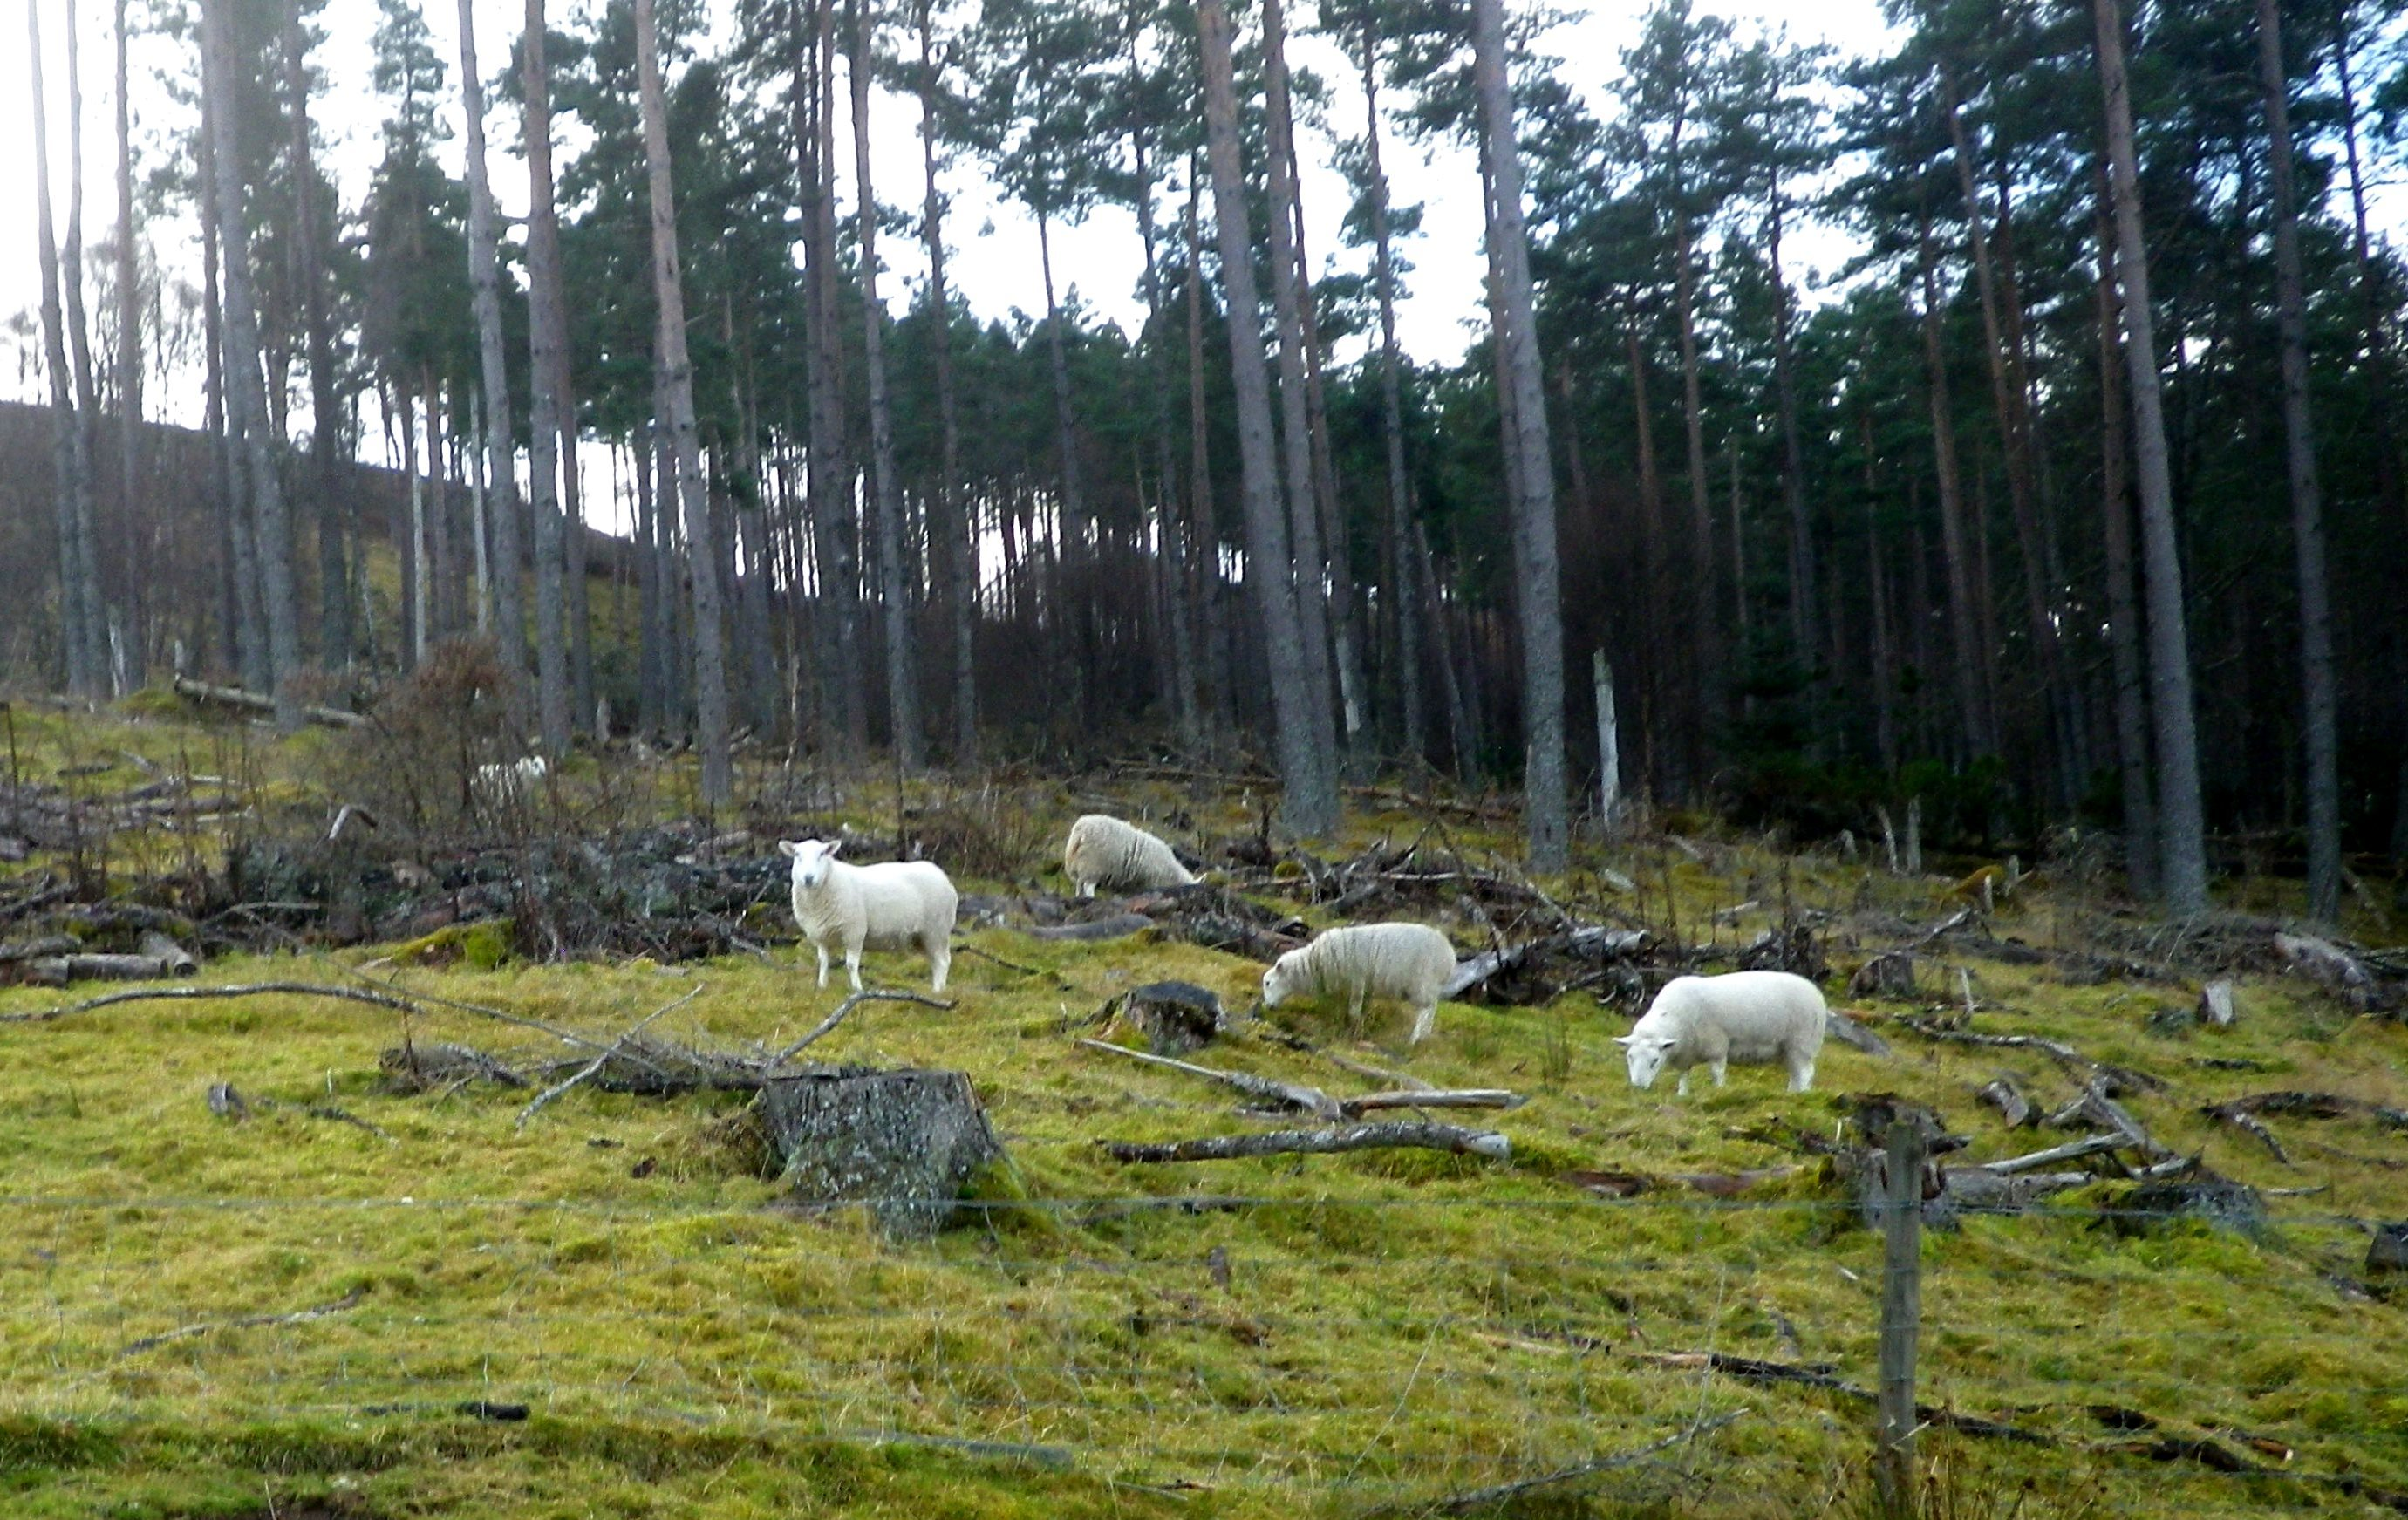 Stray sheep are a bio-security risk and a drain on resources